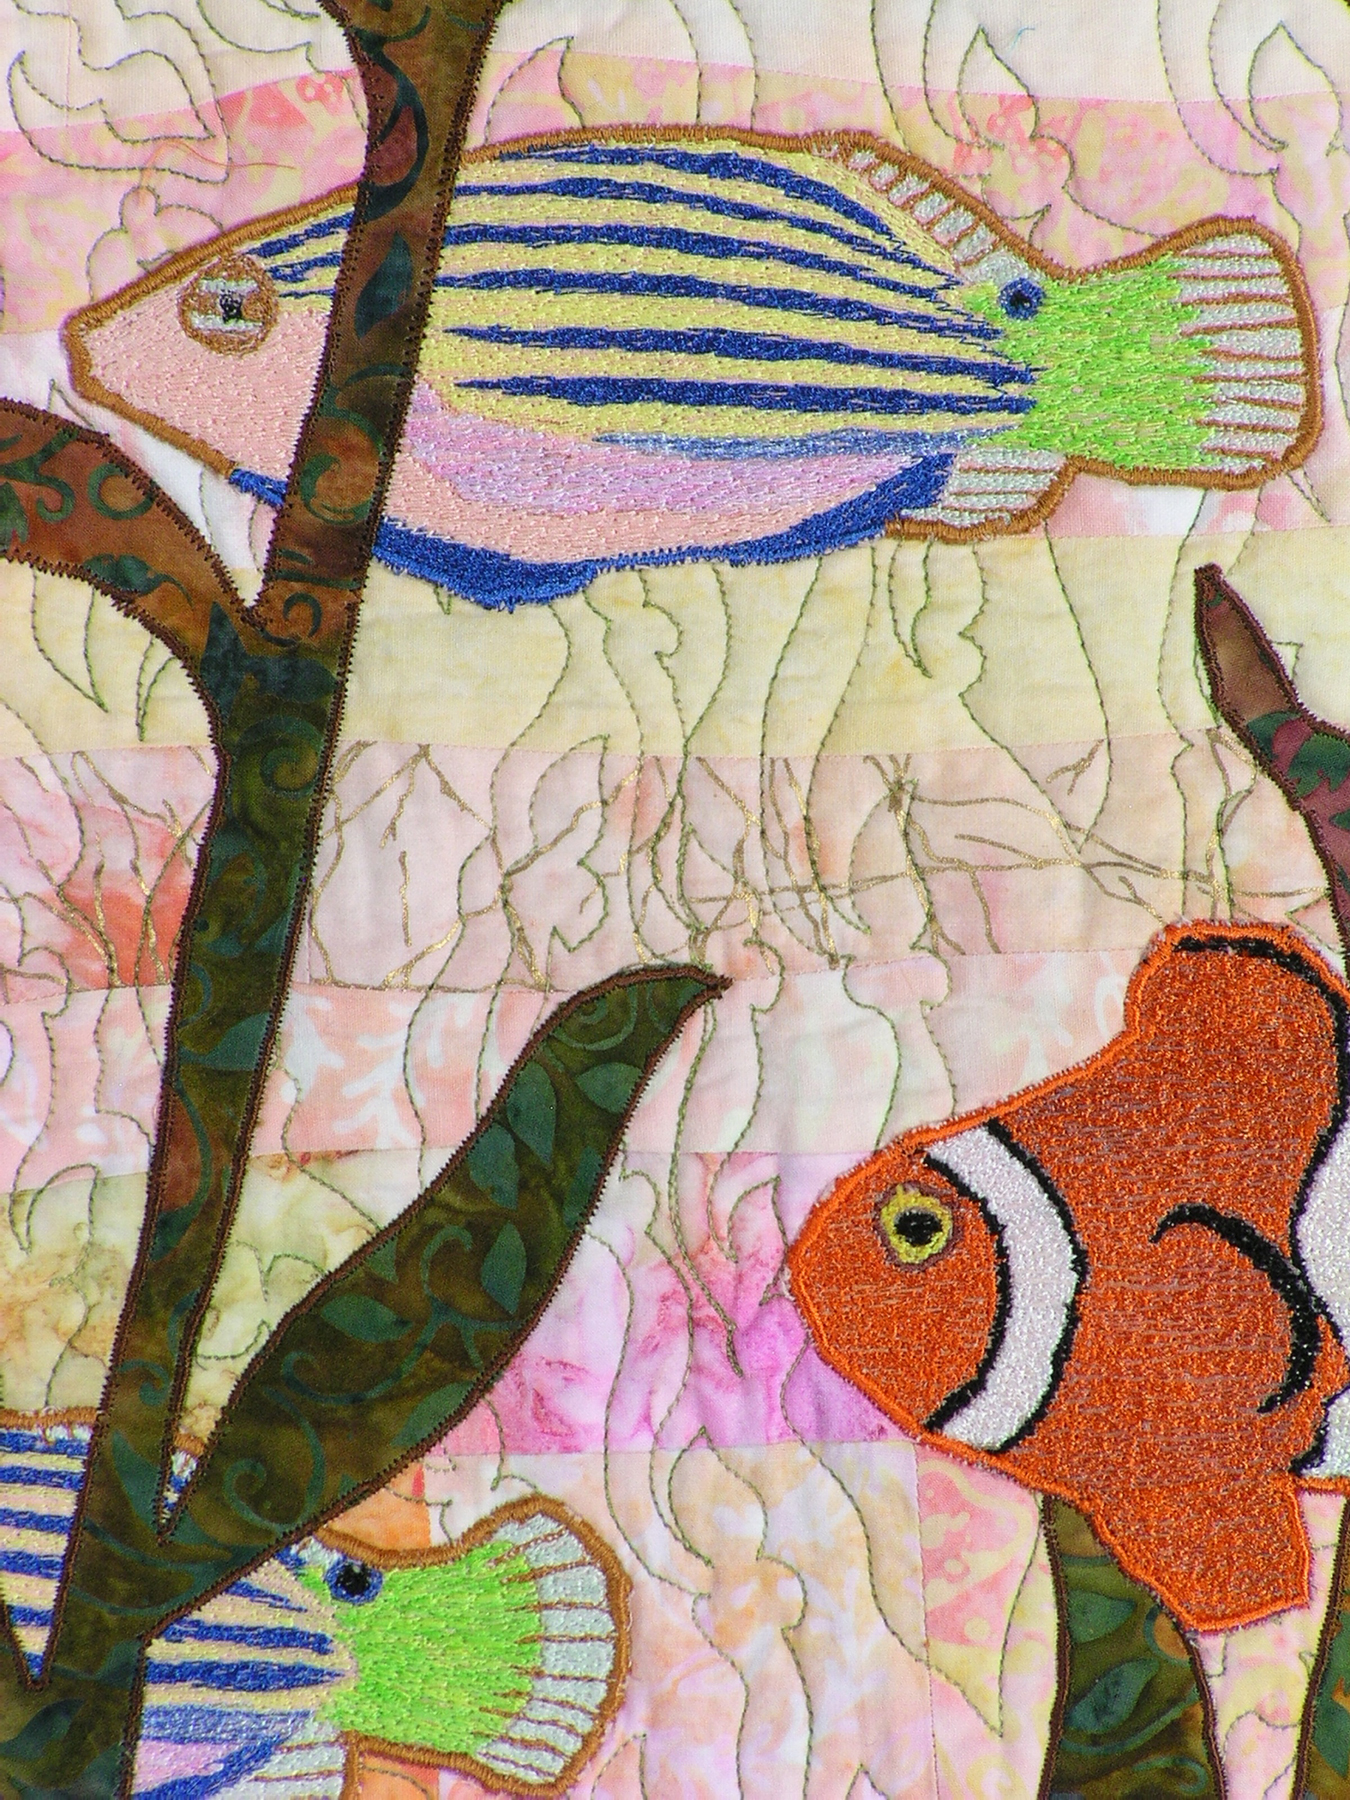 Closeup shows the thread painted clownfish, as well as how the background quilting motif reflects the outline of seaweed.